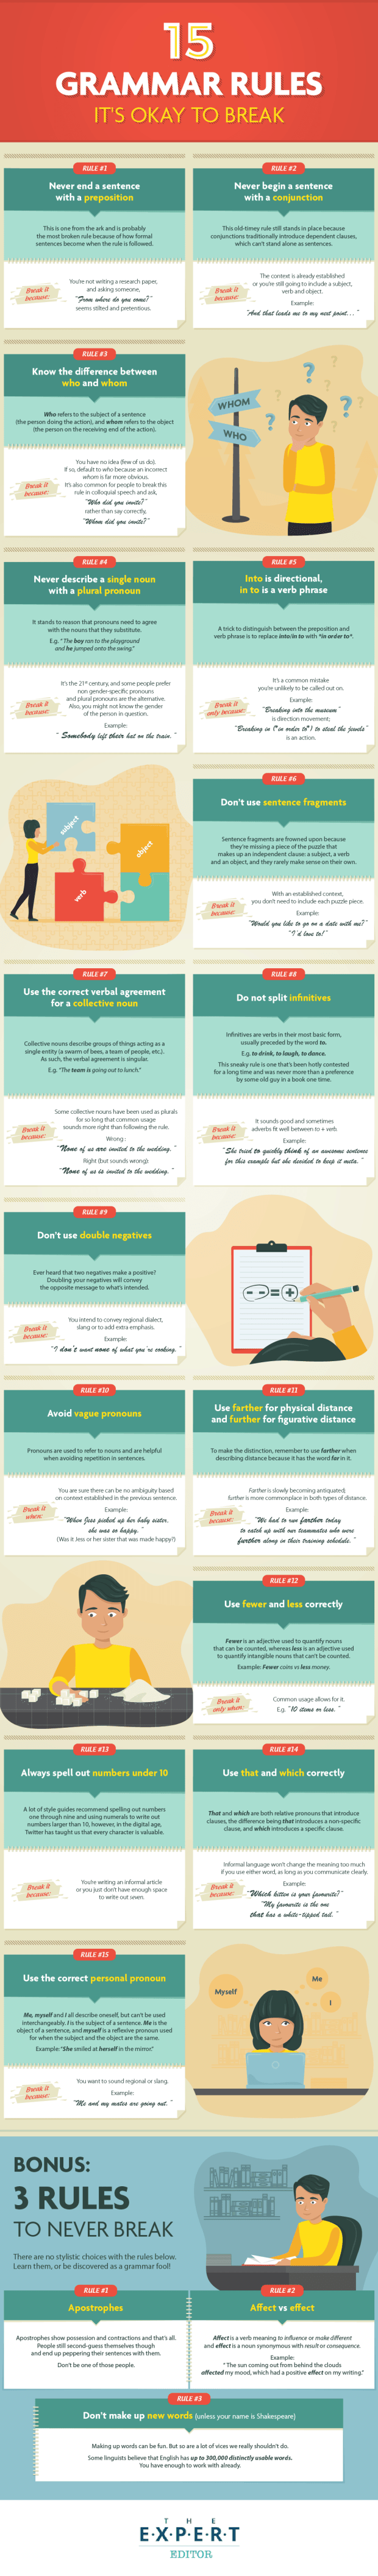 Infographic: 15 Grammar Rules You Learned in School That You Can Break With Impunity Infographic